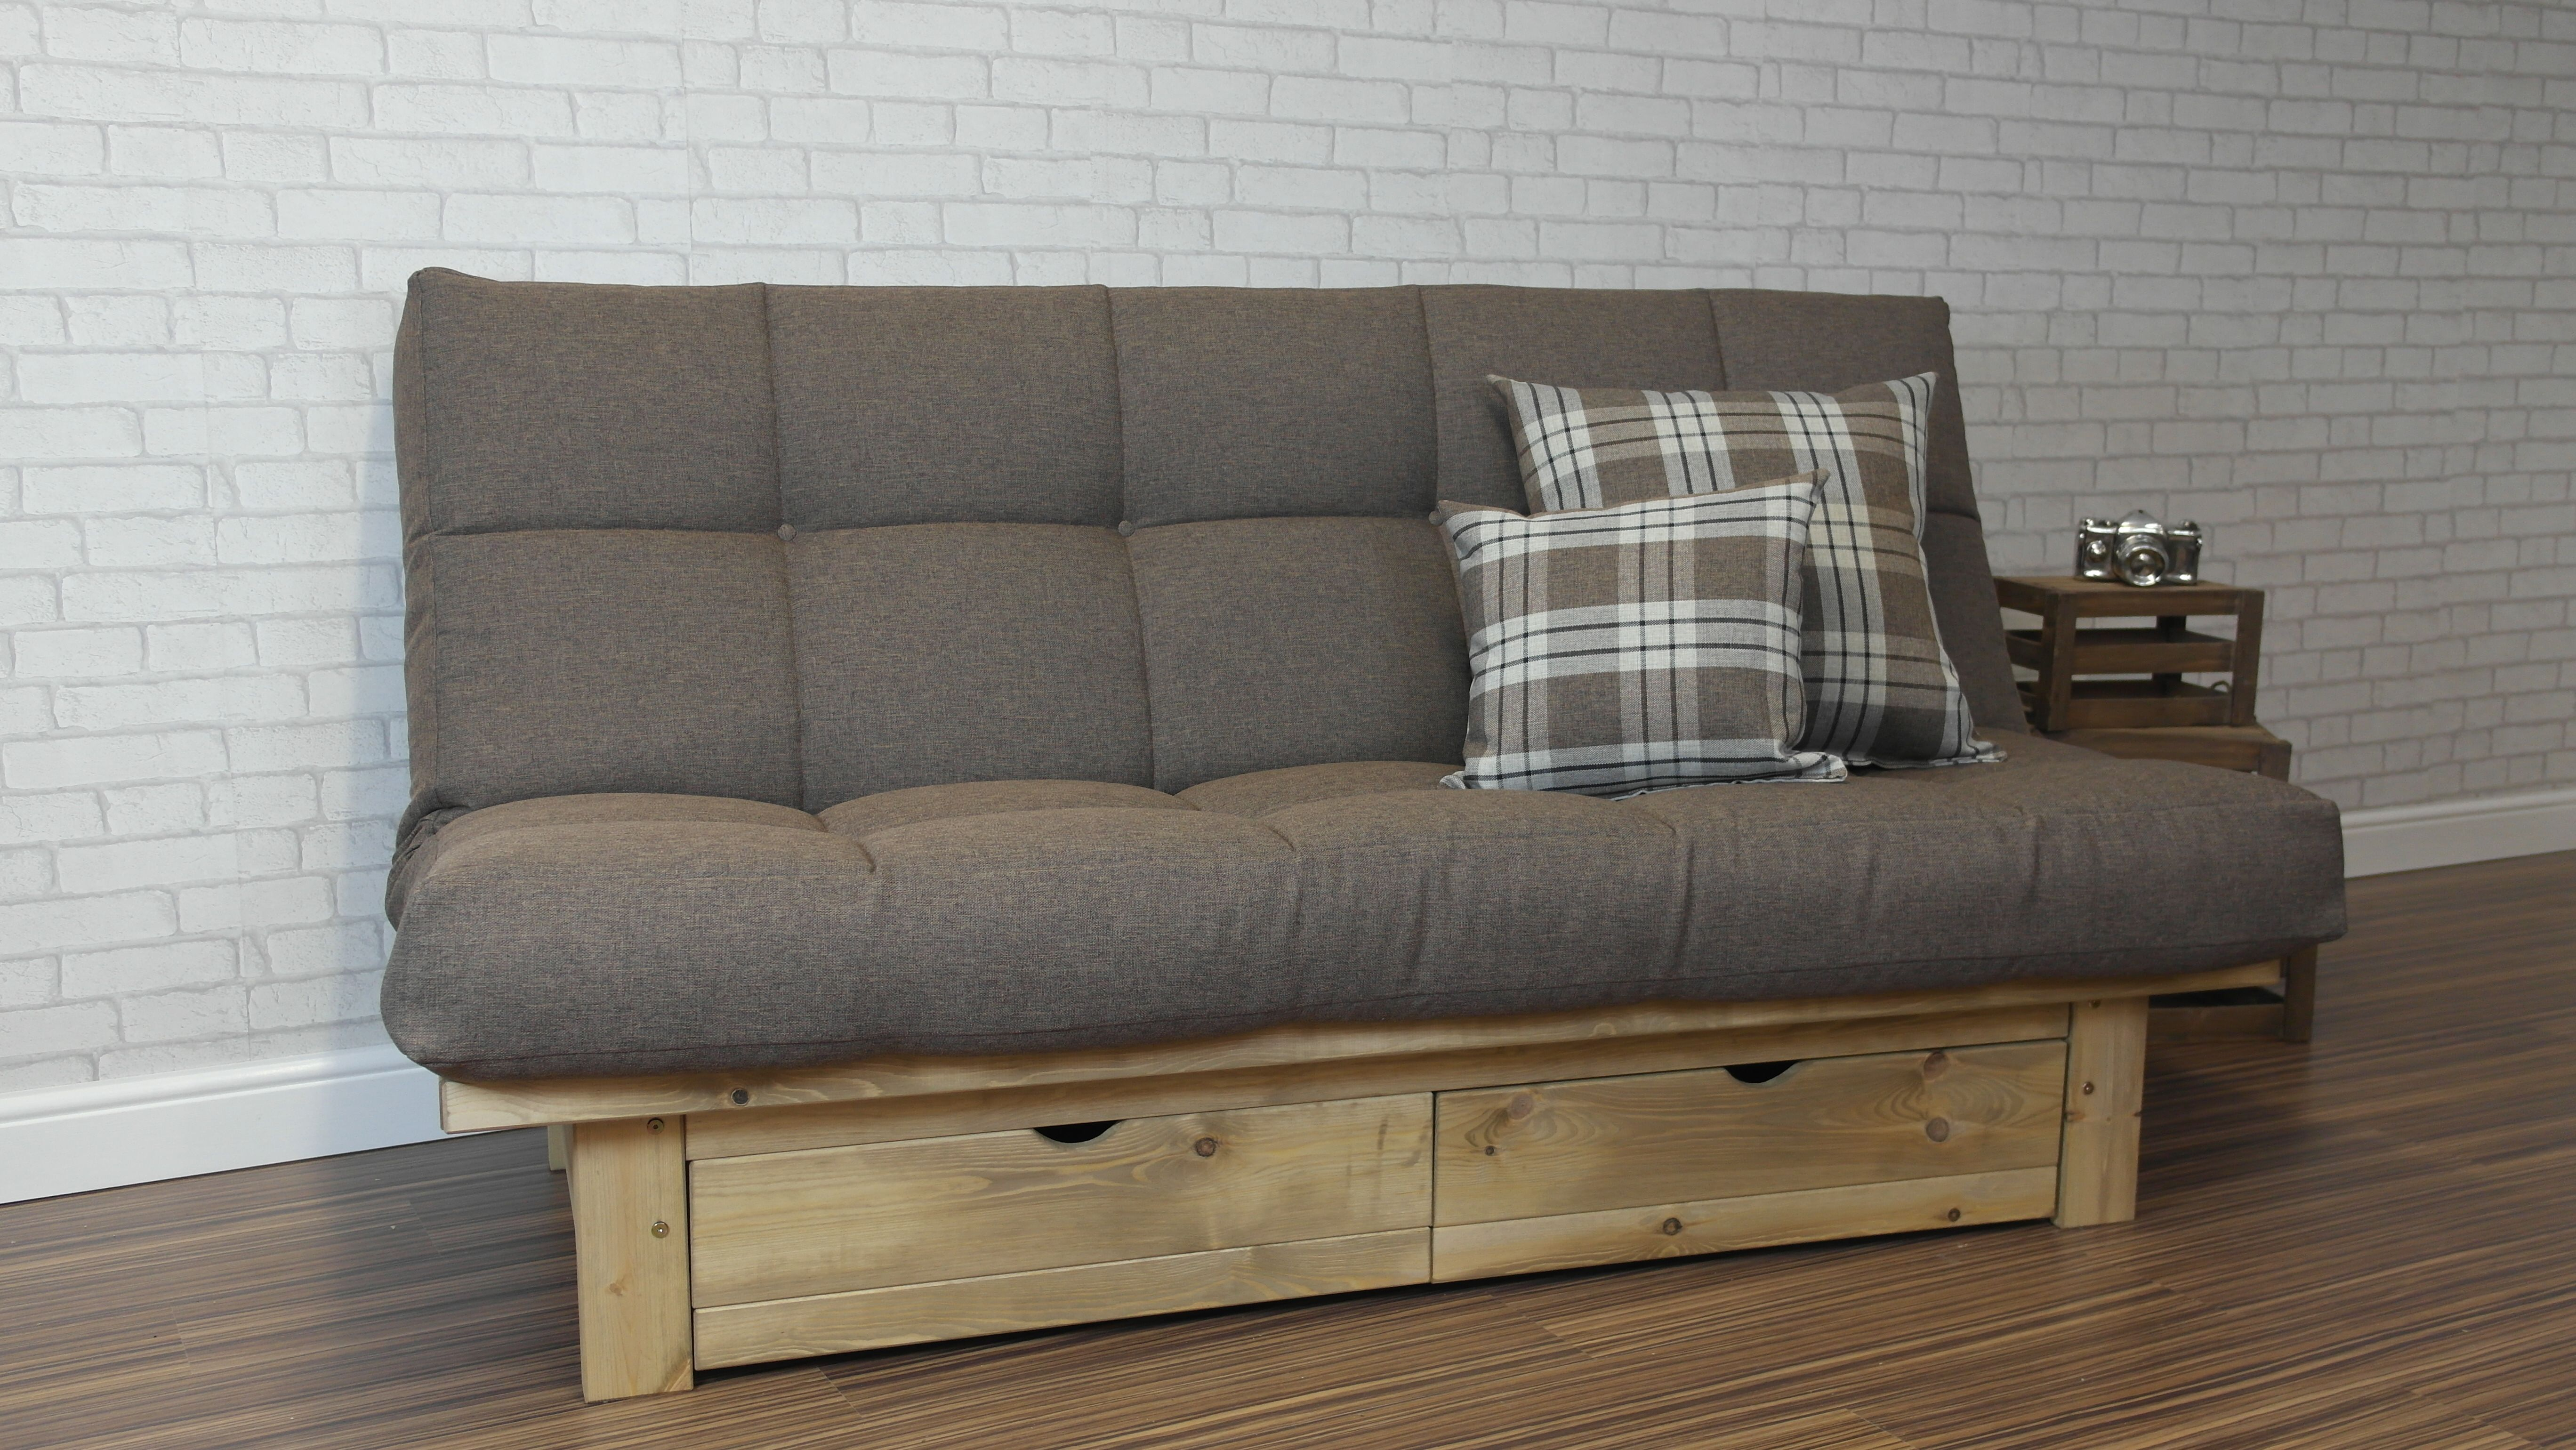 Belvedere Futon Style Sofa Bed Hand Made In Yorkshire And Delivered Throughout The U K